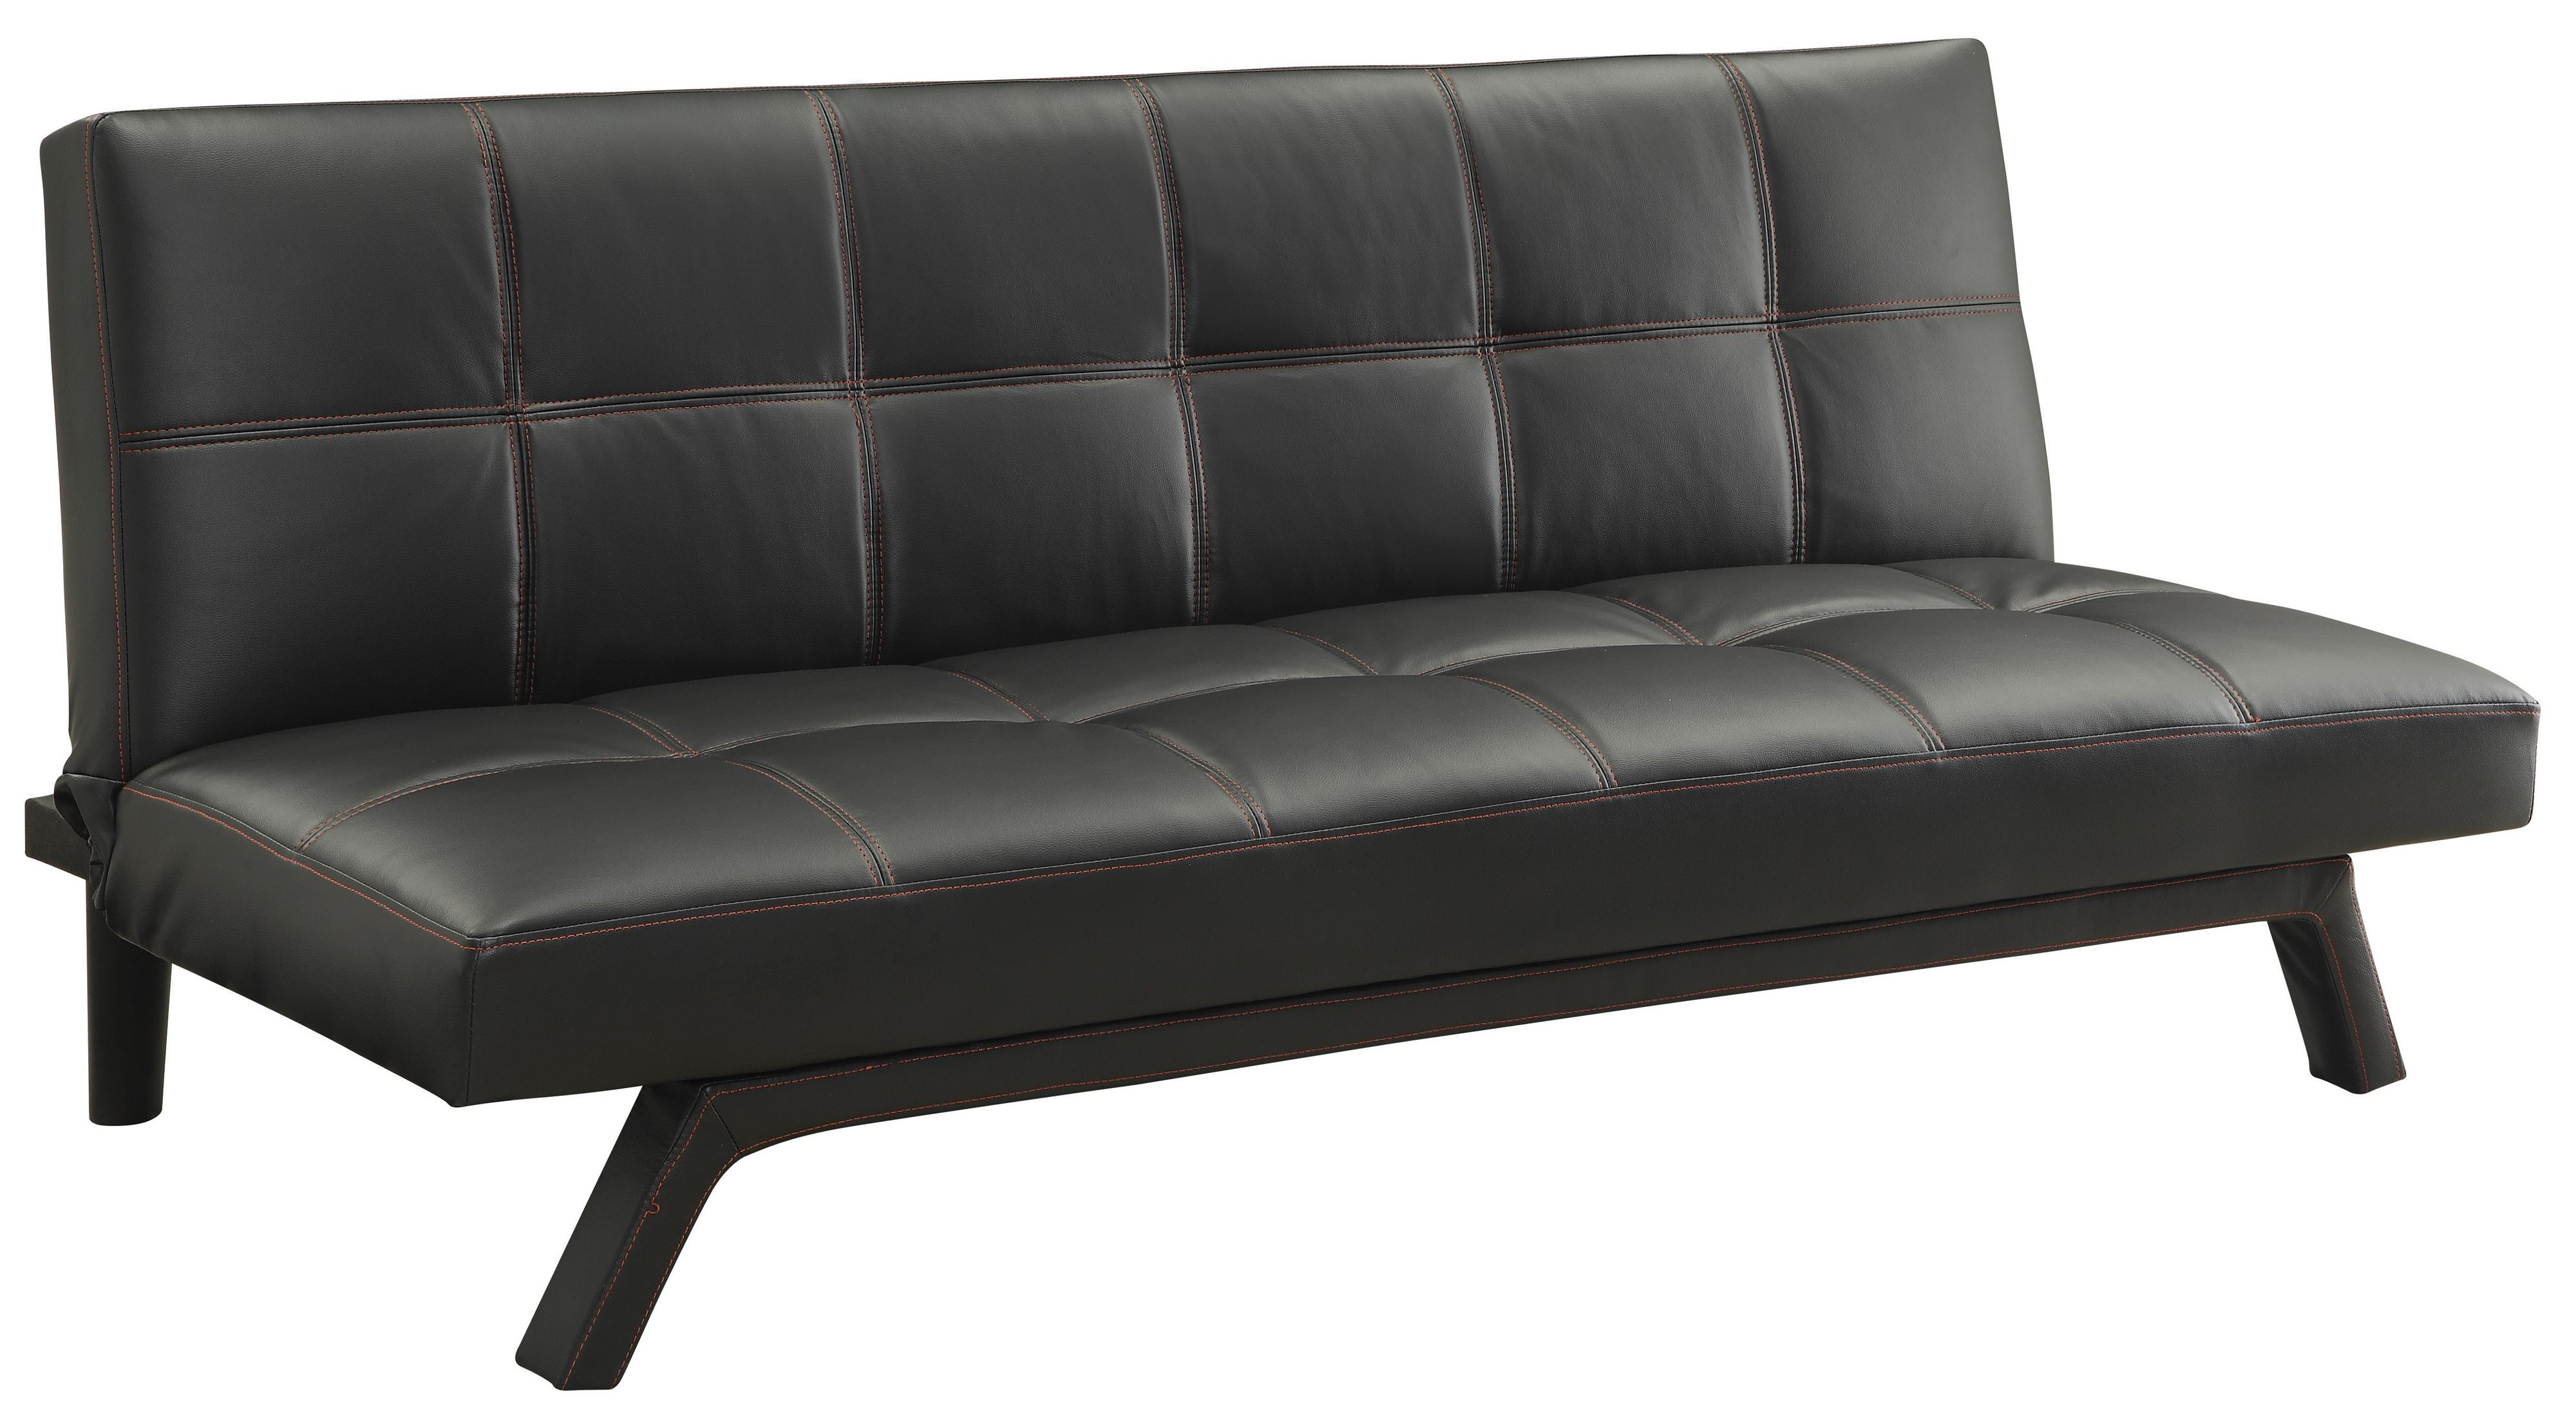 coasters sofa bed inexpensive sofas toronto coaster beds and futons contemporary in